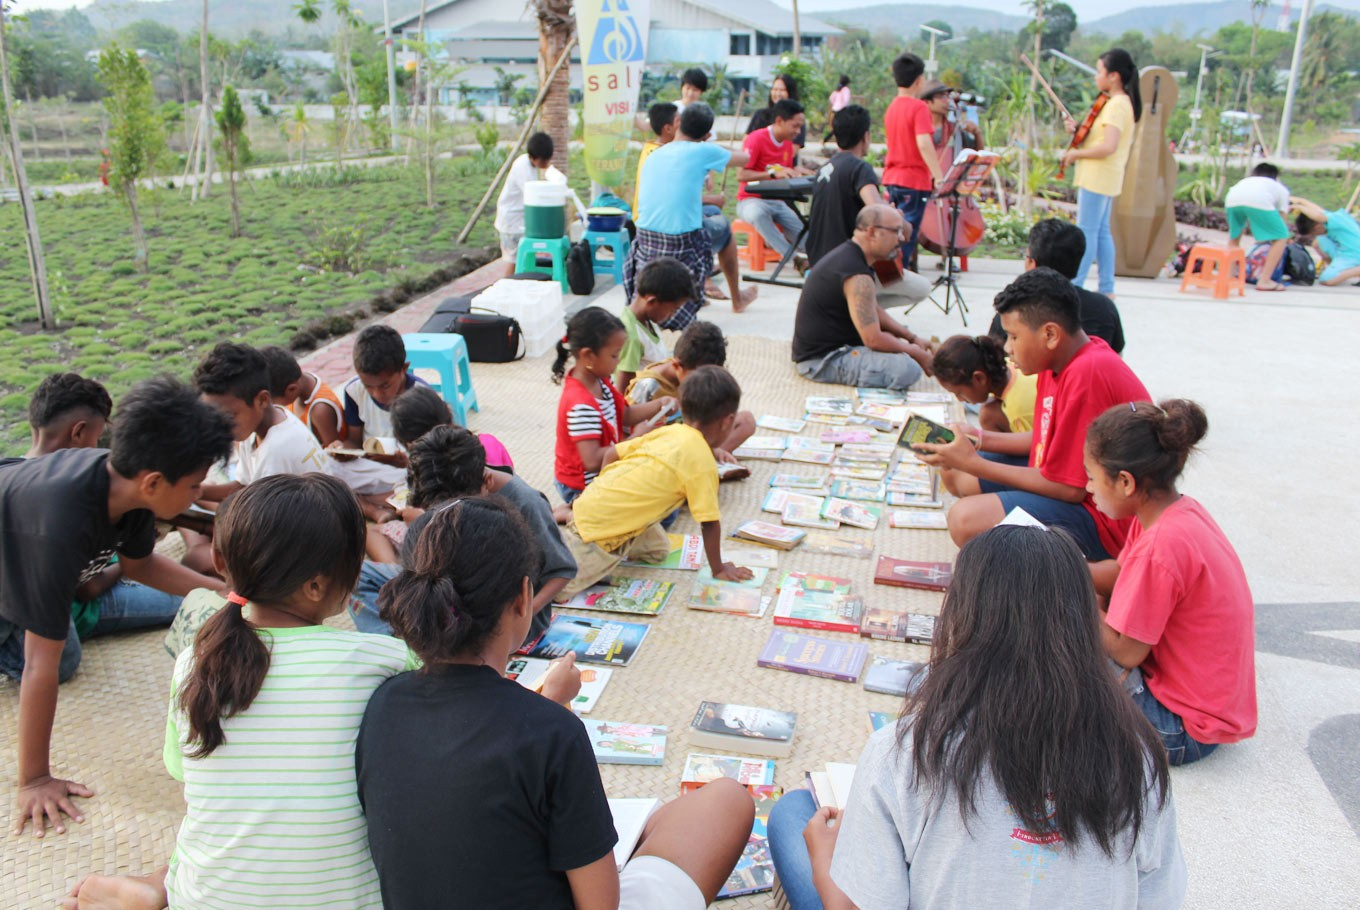 Garden library brings books to public spaces in Kupang, Atambua